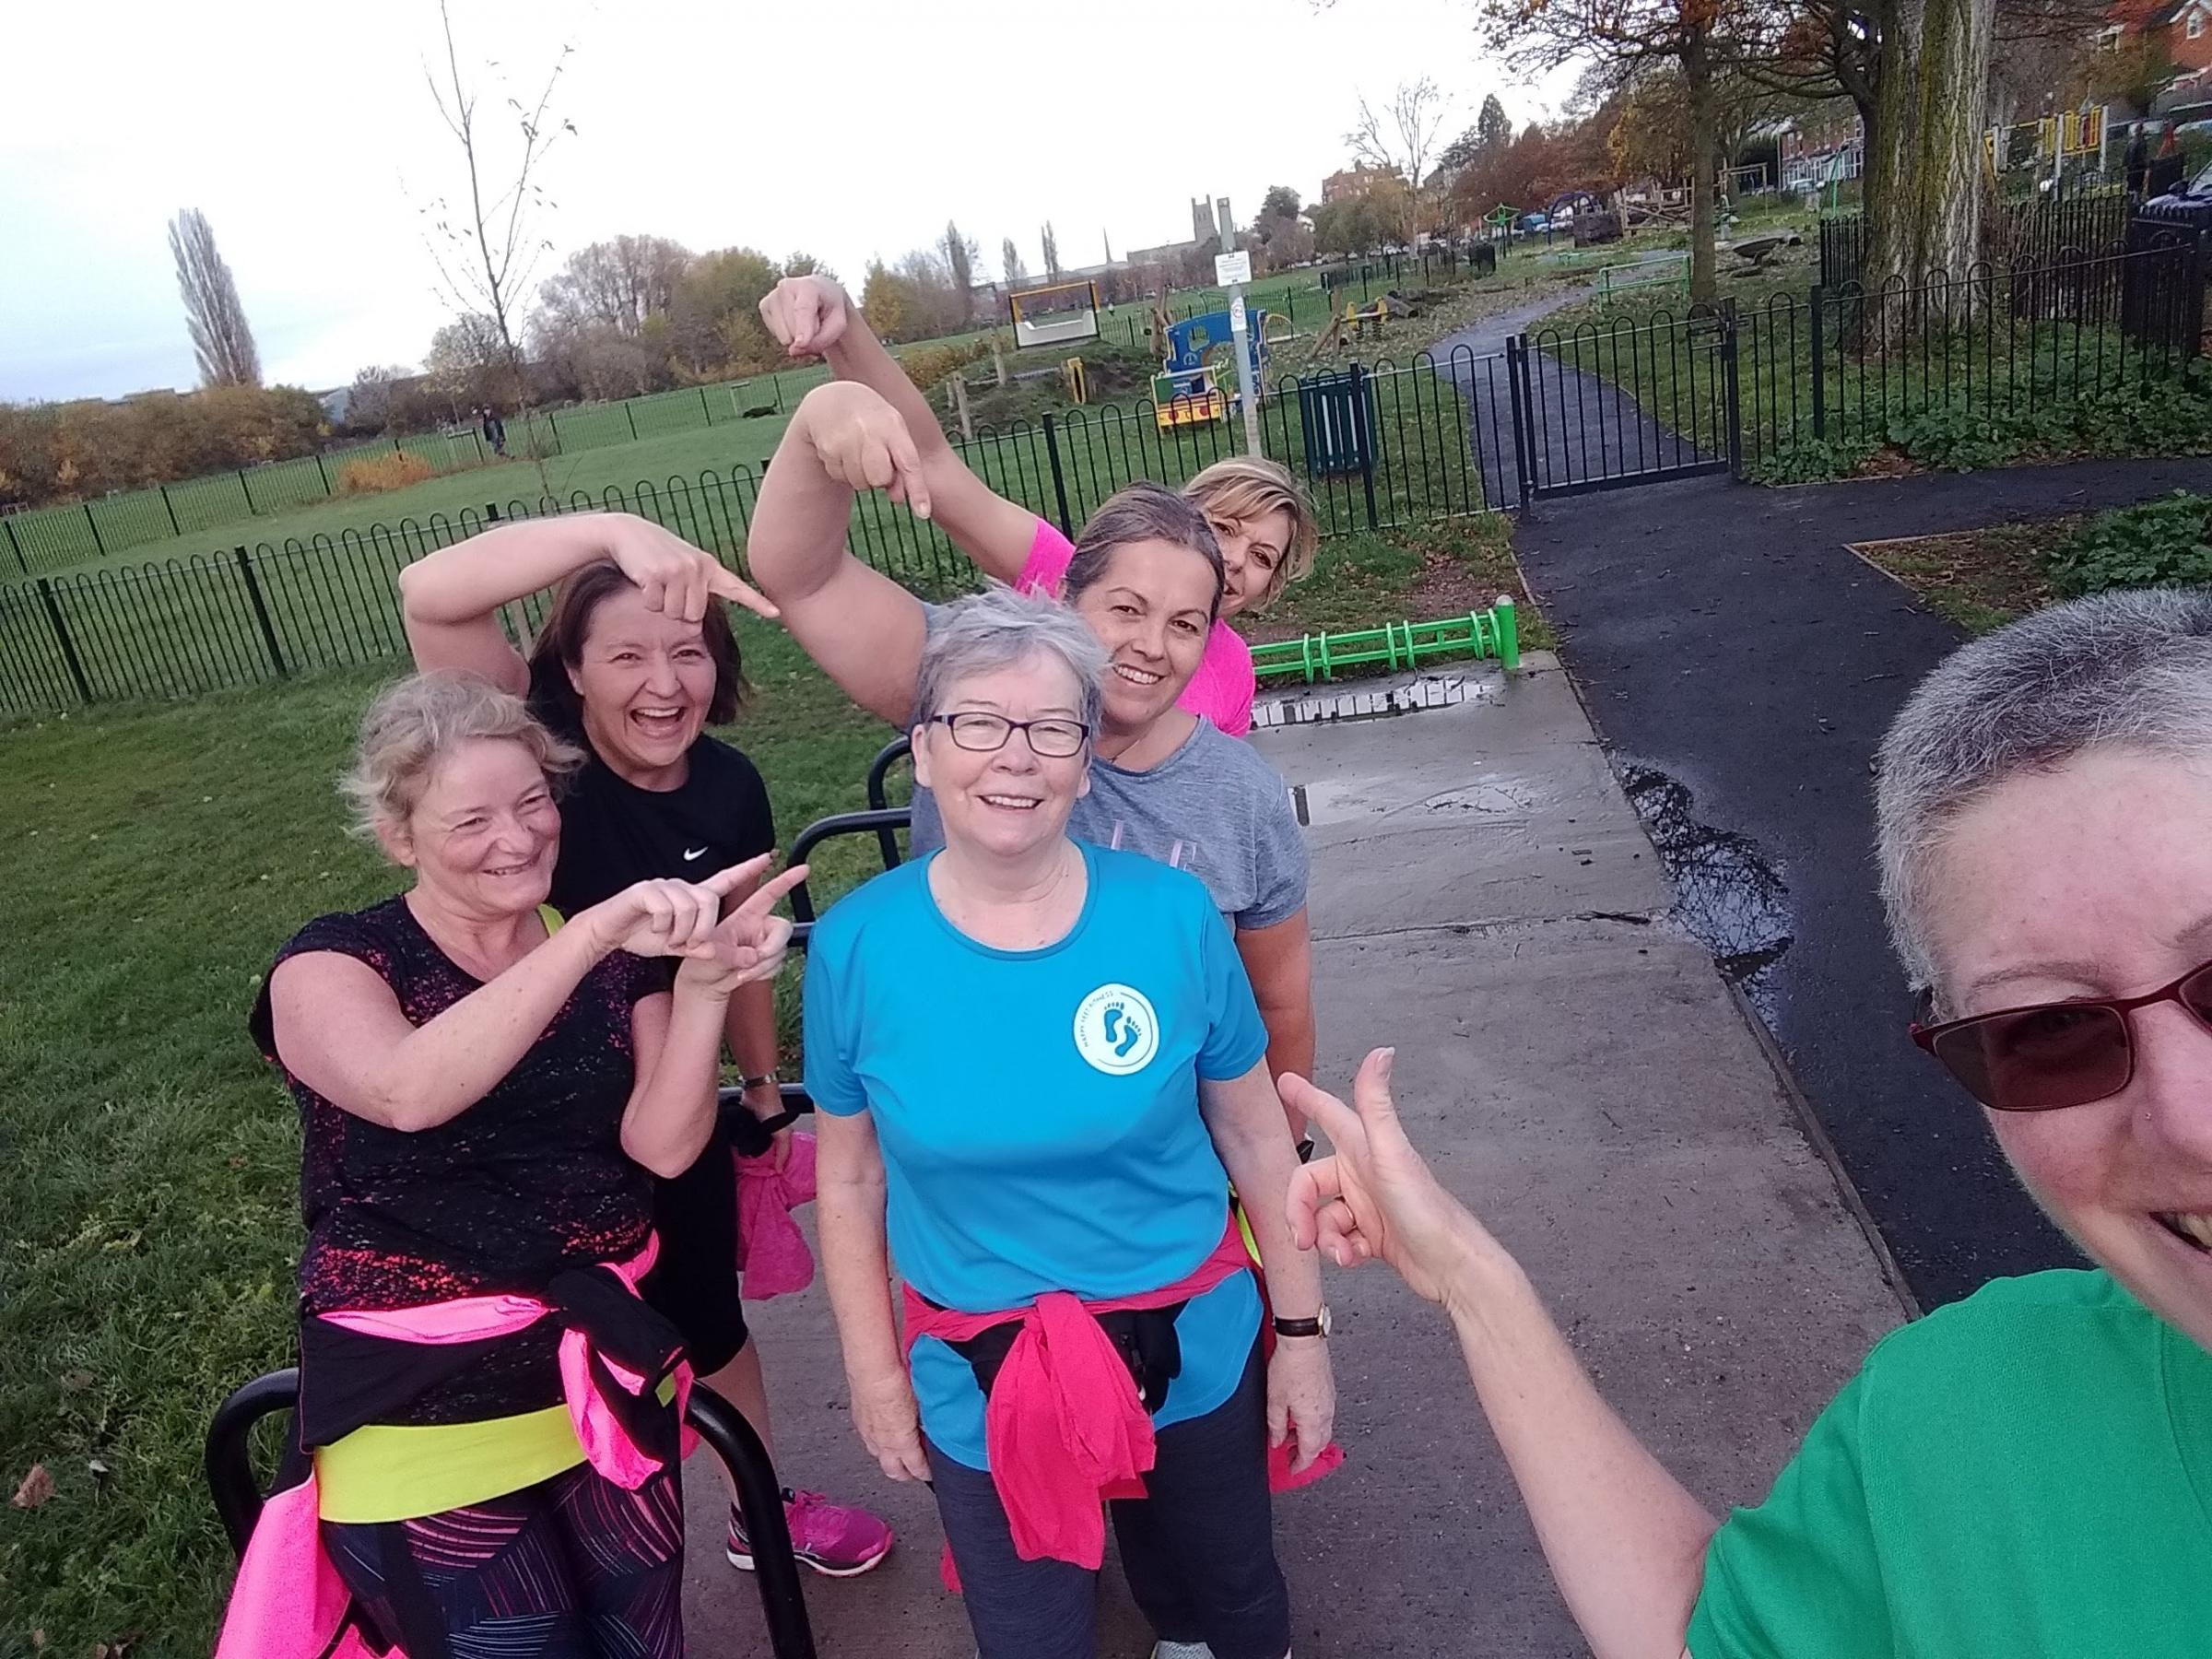 HEALTHY: Marion Winwood, aged 71, will complete her tenth marathon